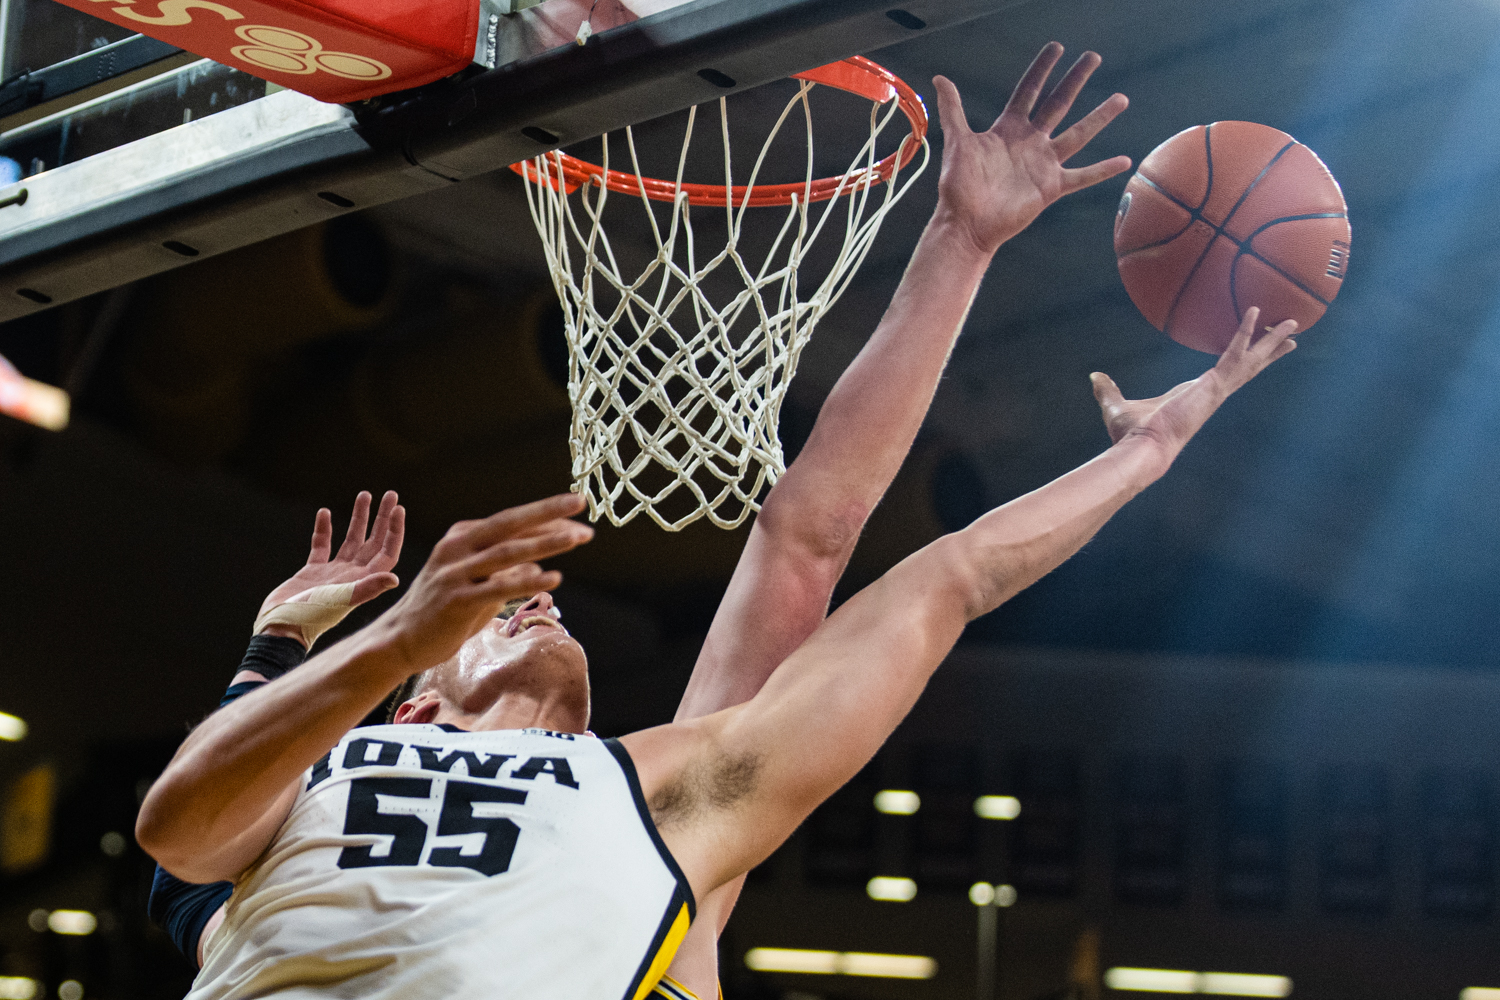 Iowa forward Luka Garza looks for the basket during a men's basketball game between Iowa and Michigan at Carver-Hawkeye Arena on Friday, Jan. 17, 2020.